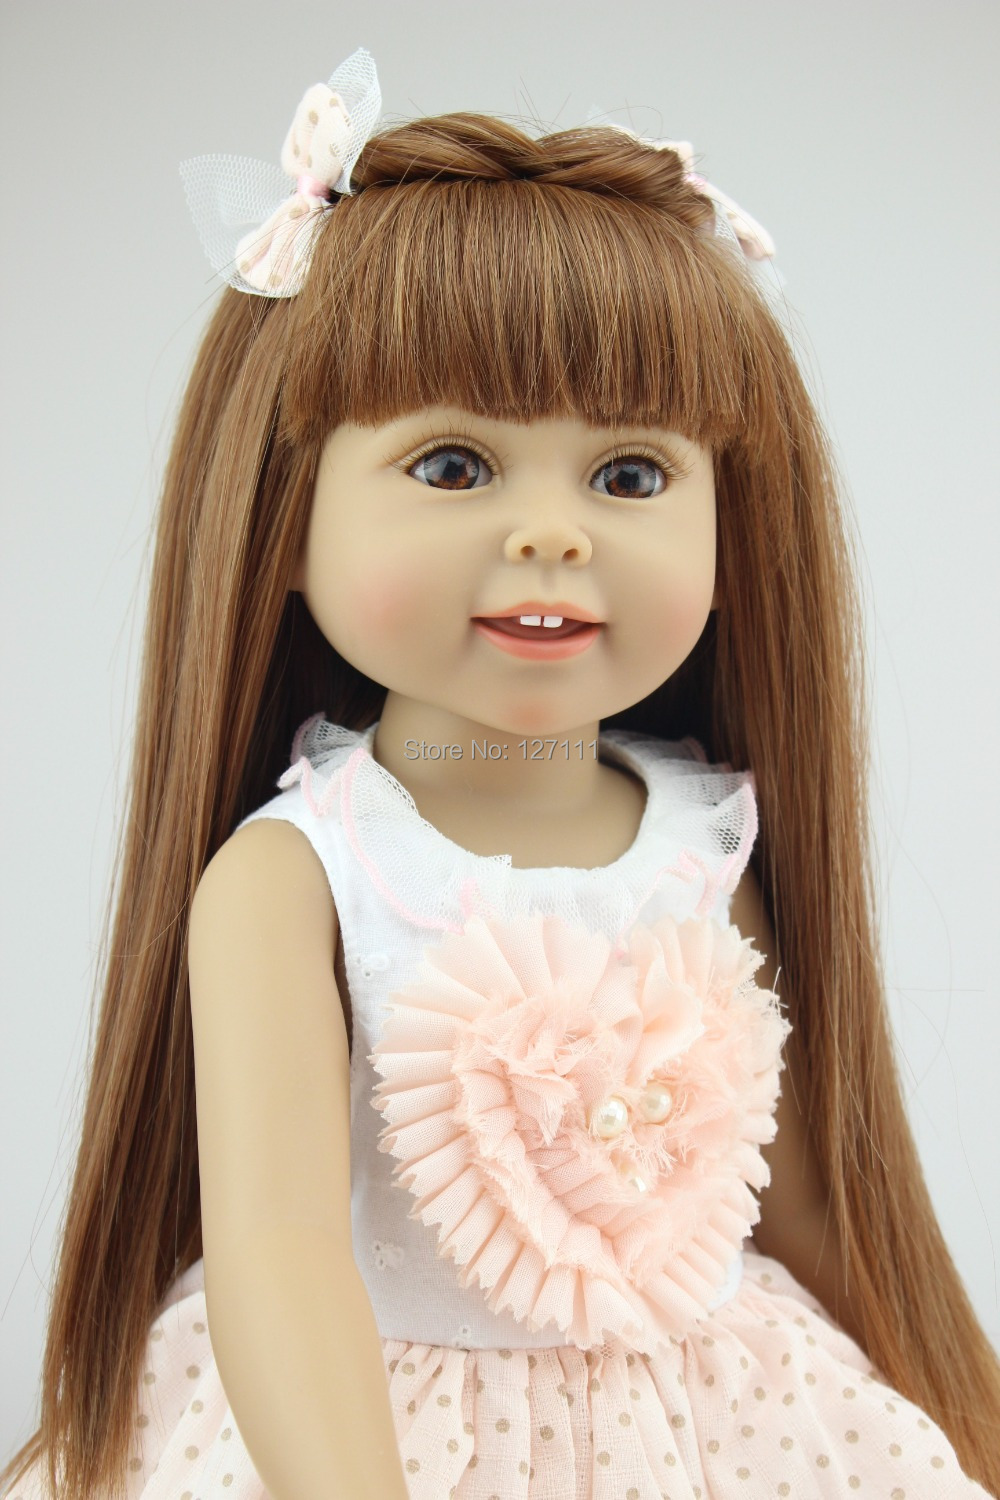 18 inch girl doll reborn toys birthday gift for american